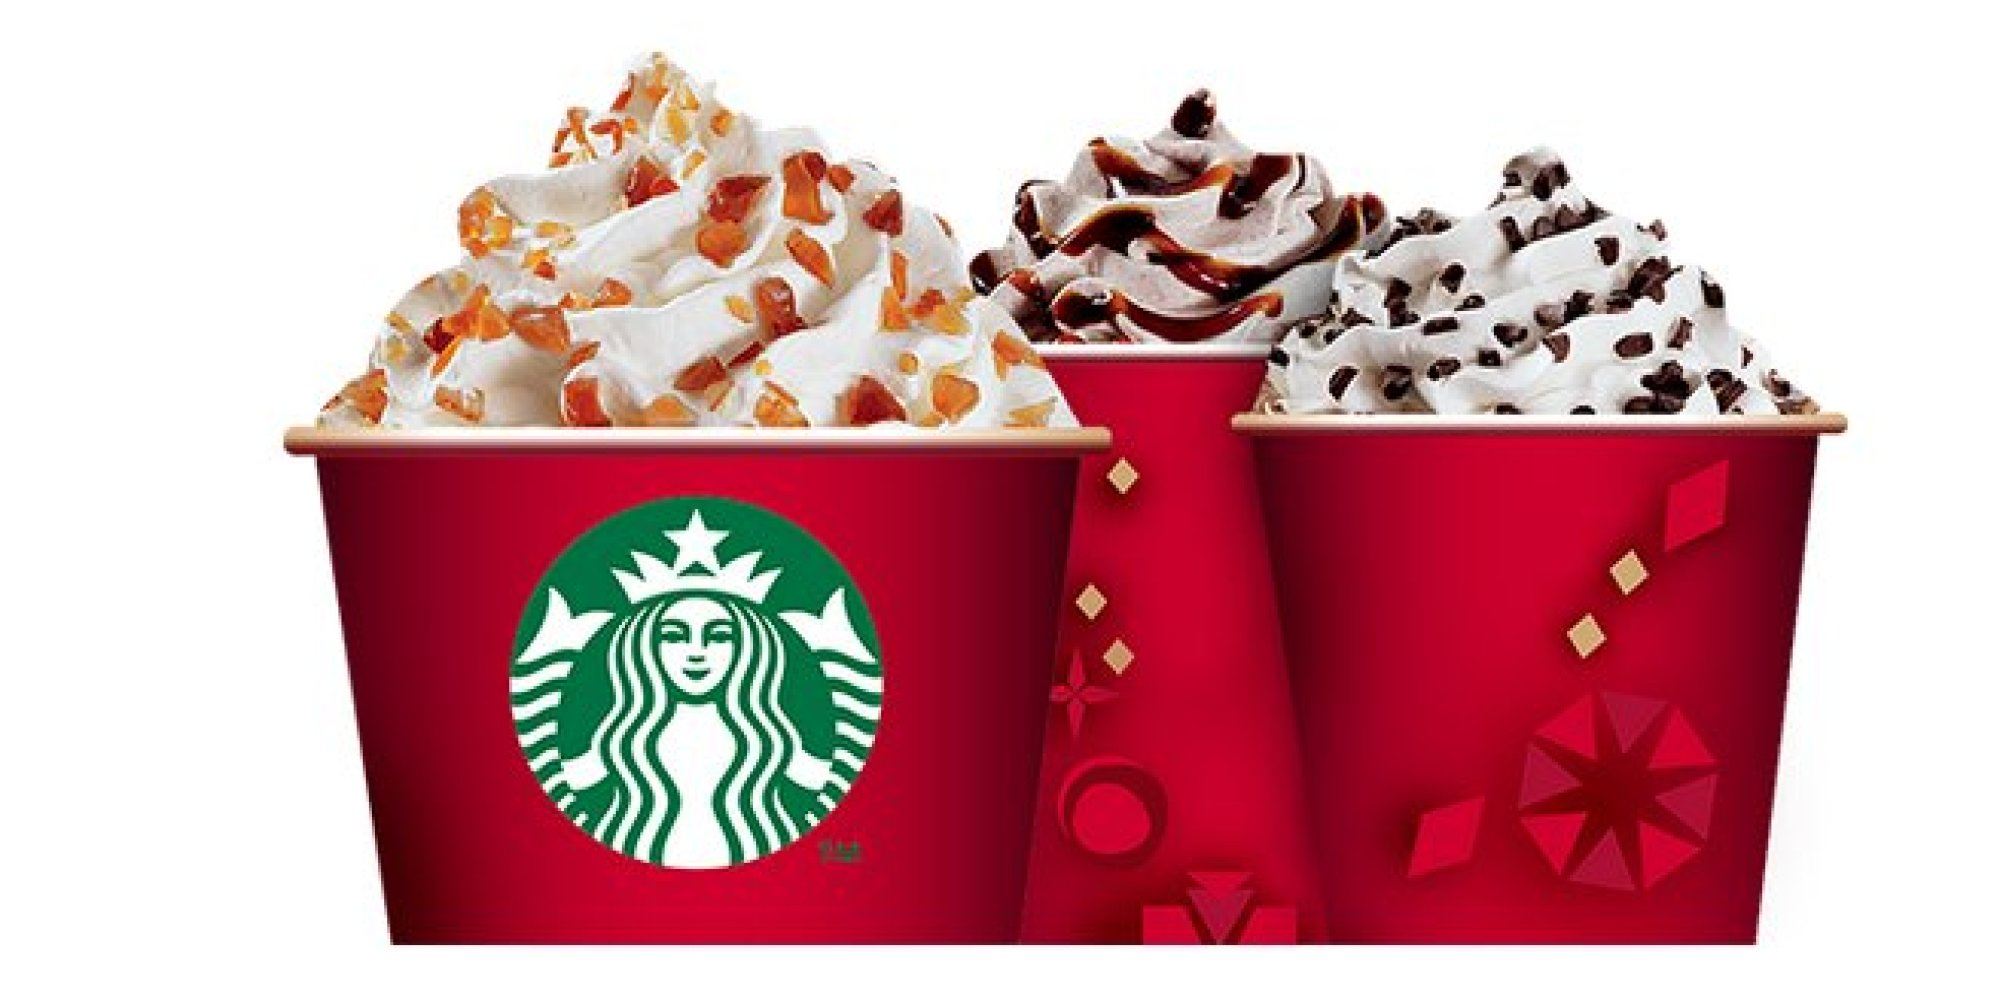 Groupons Starbucks Deal Gets You 10 For 5 UPDATED